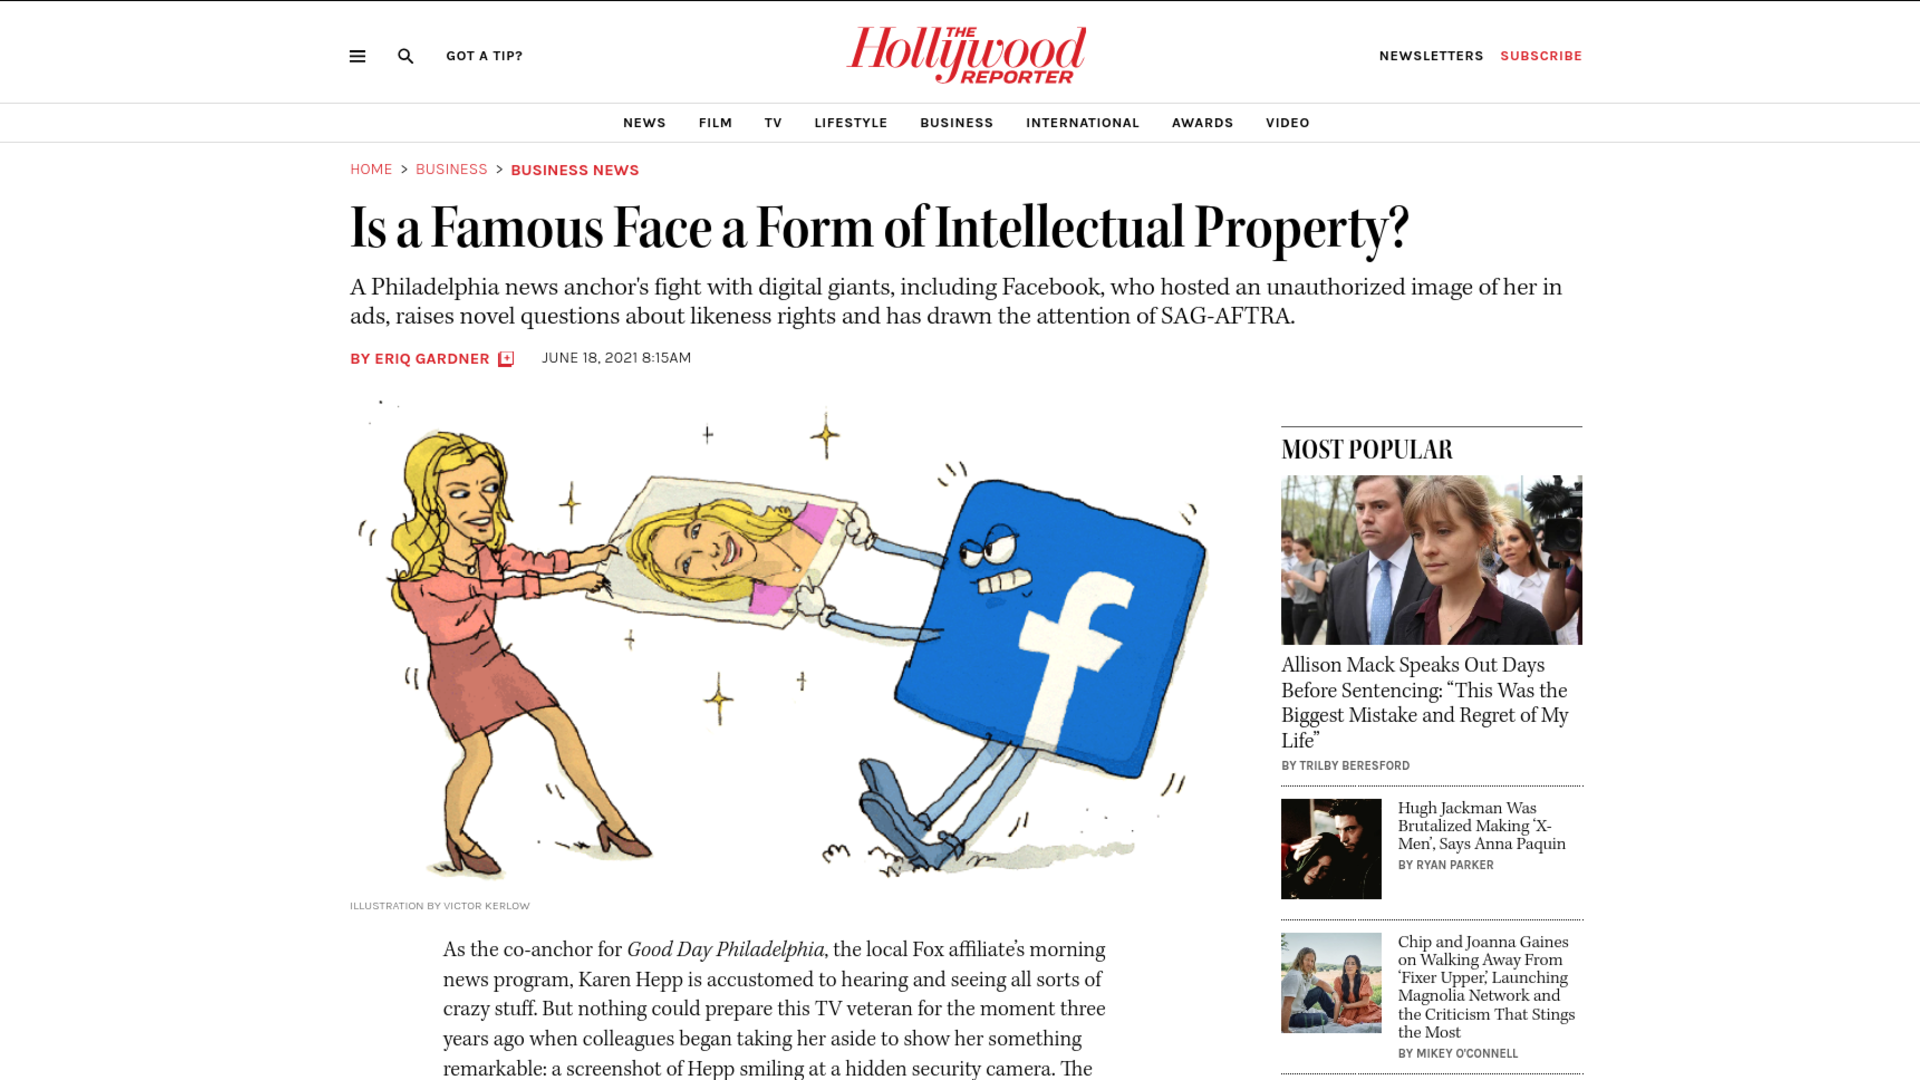 Fairness Rocks News Is a Famous Face a Form of Intellectual Property?